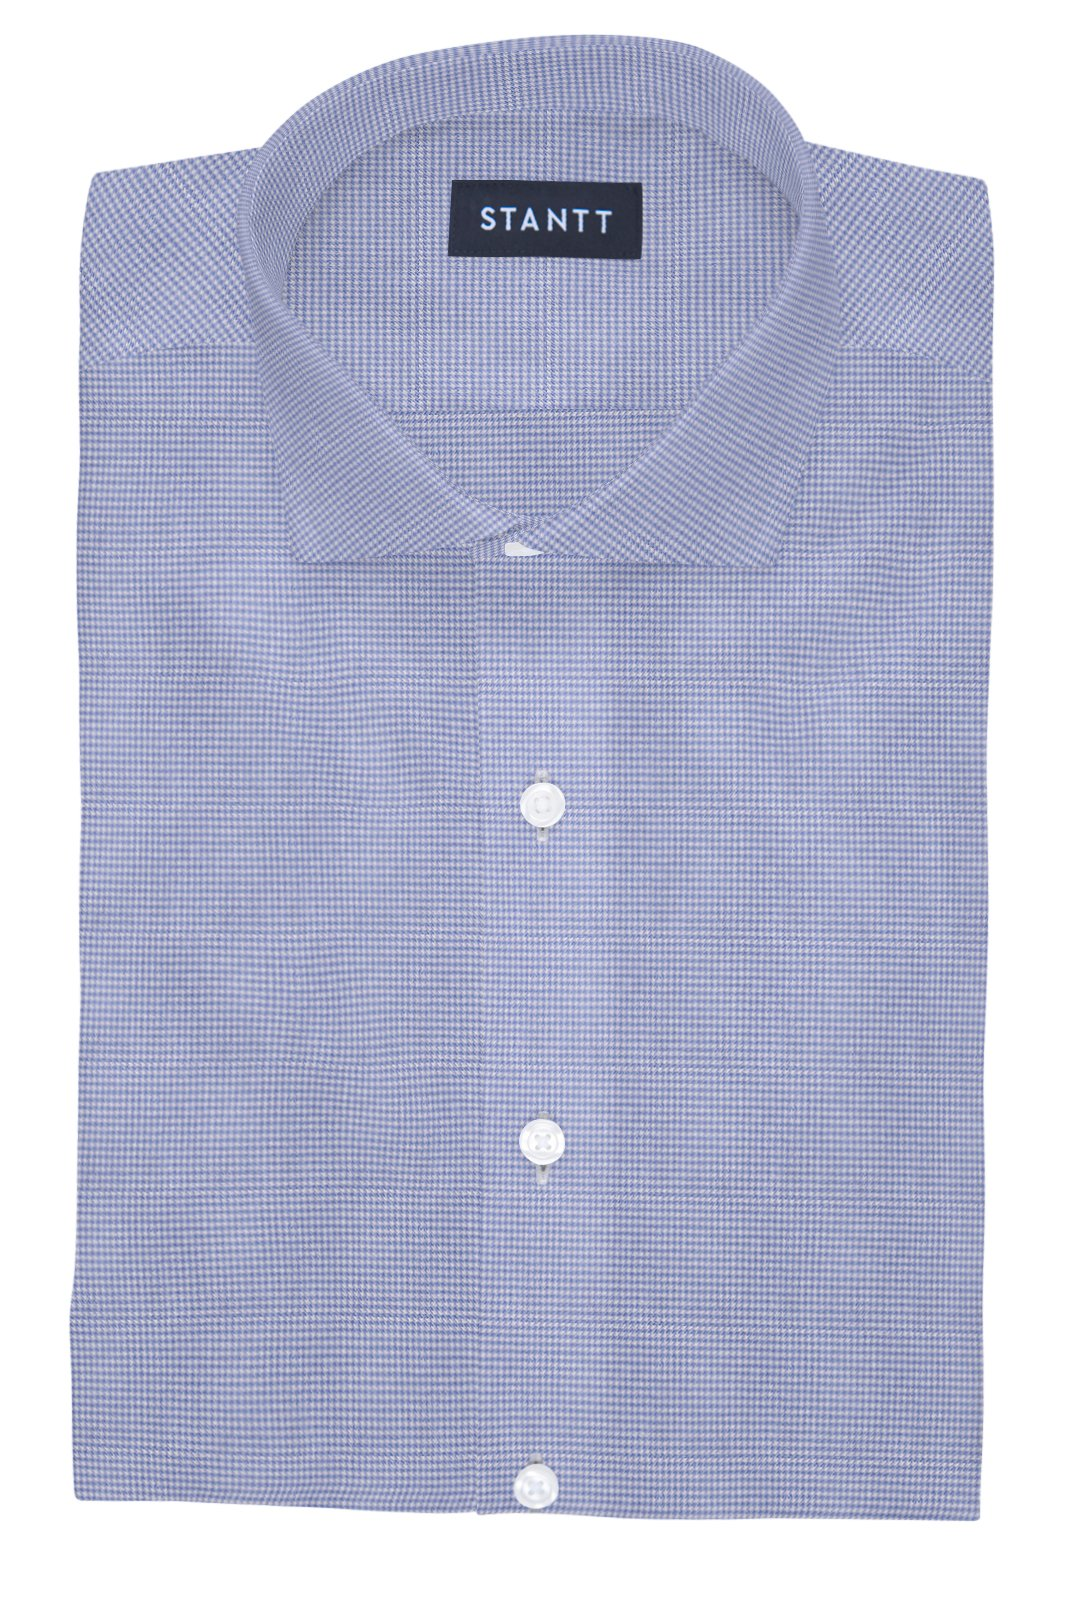 Performance Light Blue Houndstooth: Cutaway Collar, Barrel Cuff